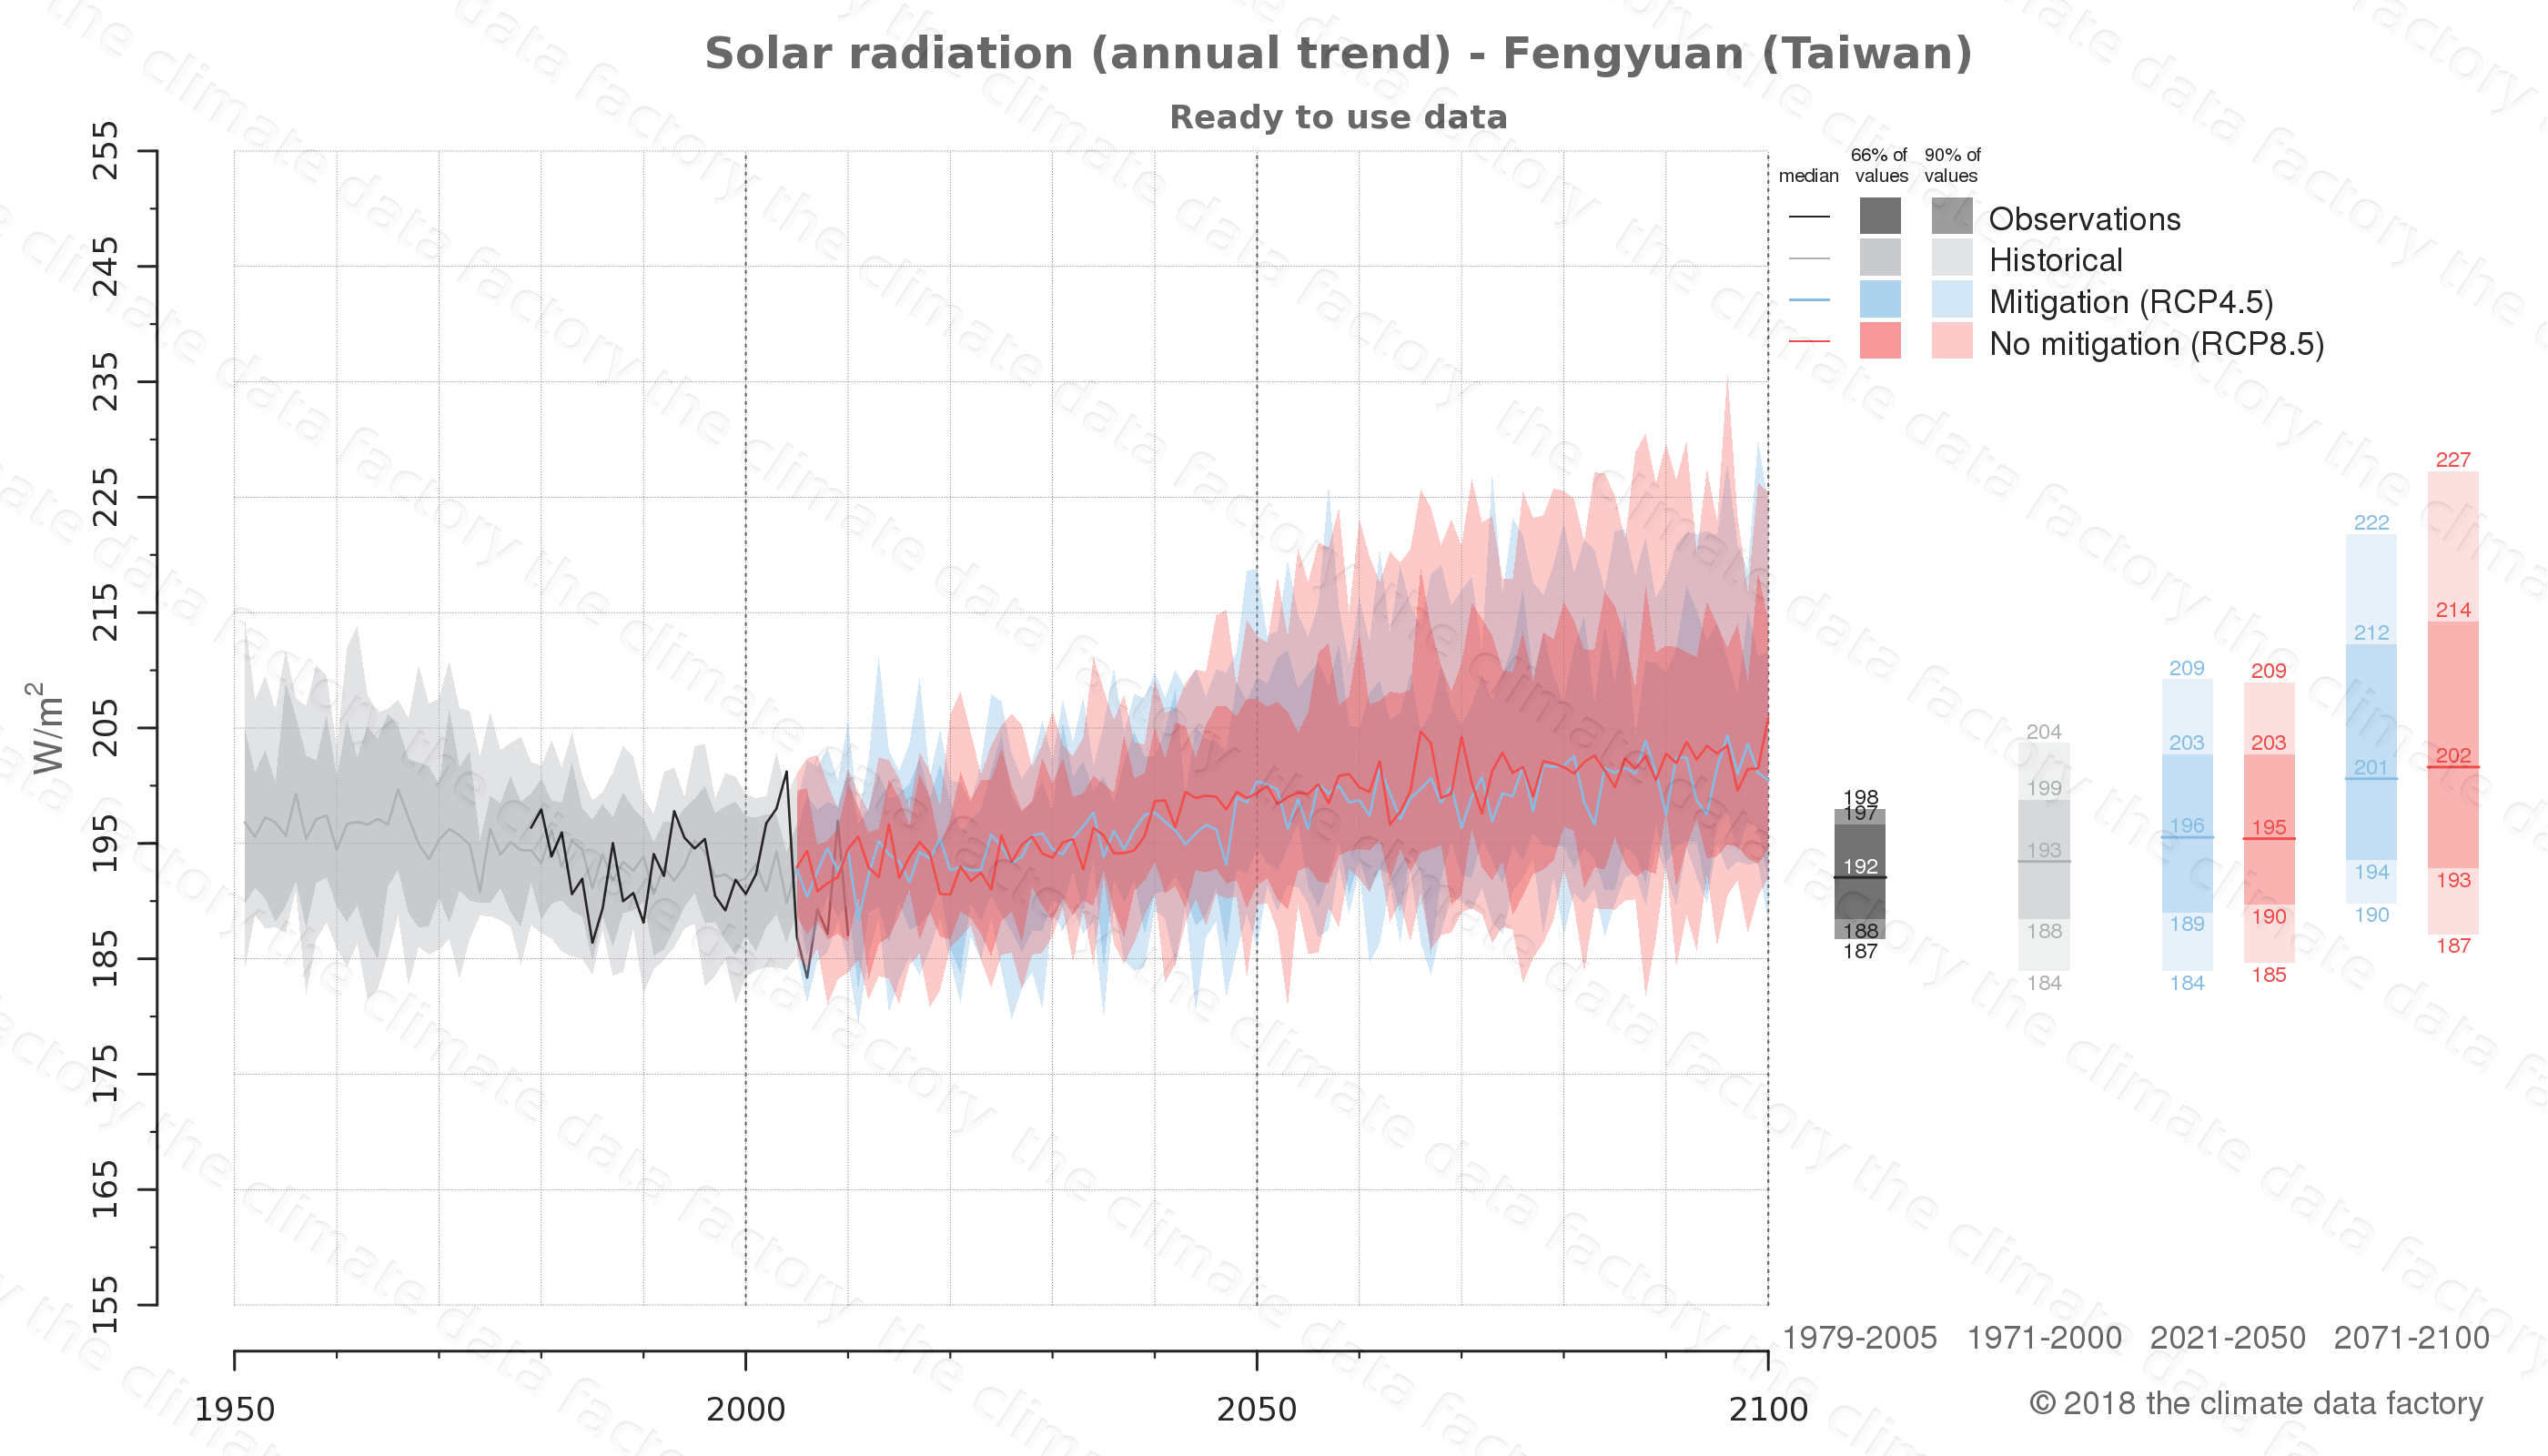 climate change data policy adaptation climate graph city data solar-radiation fengyuan taiwan